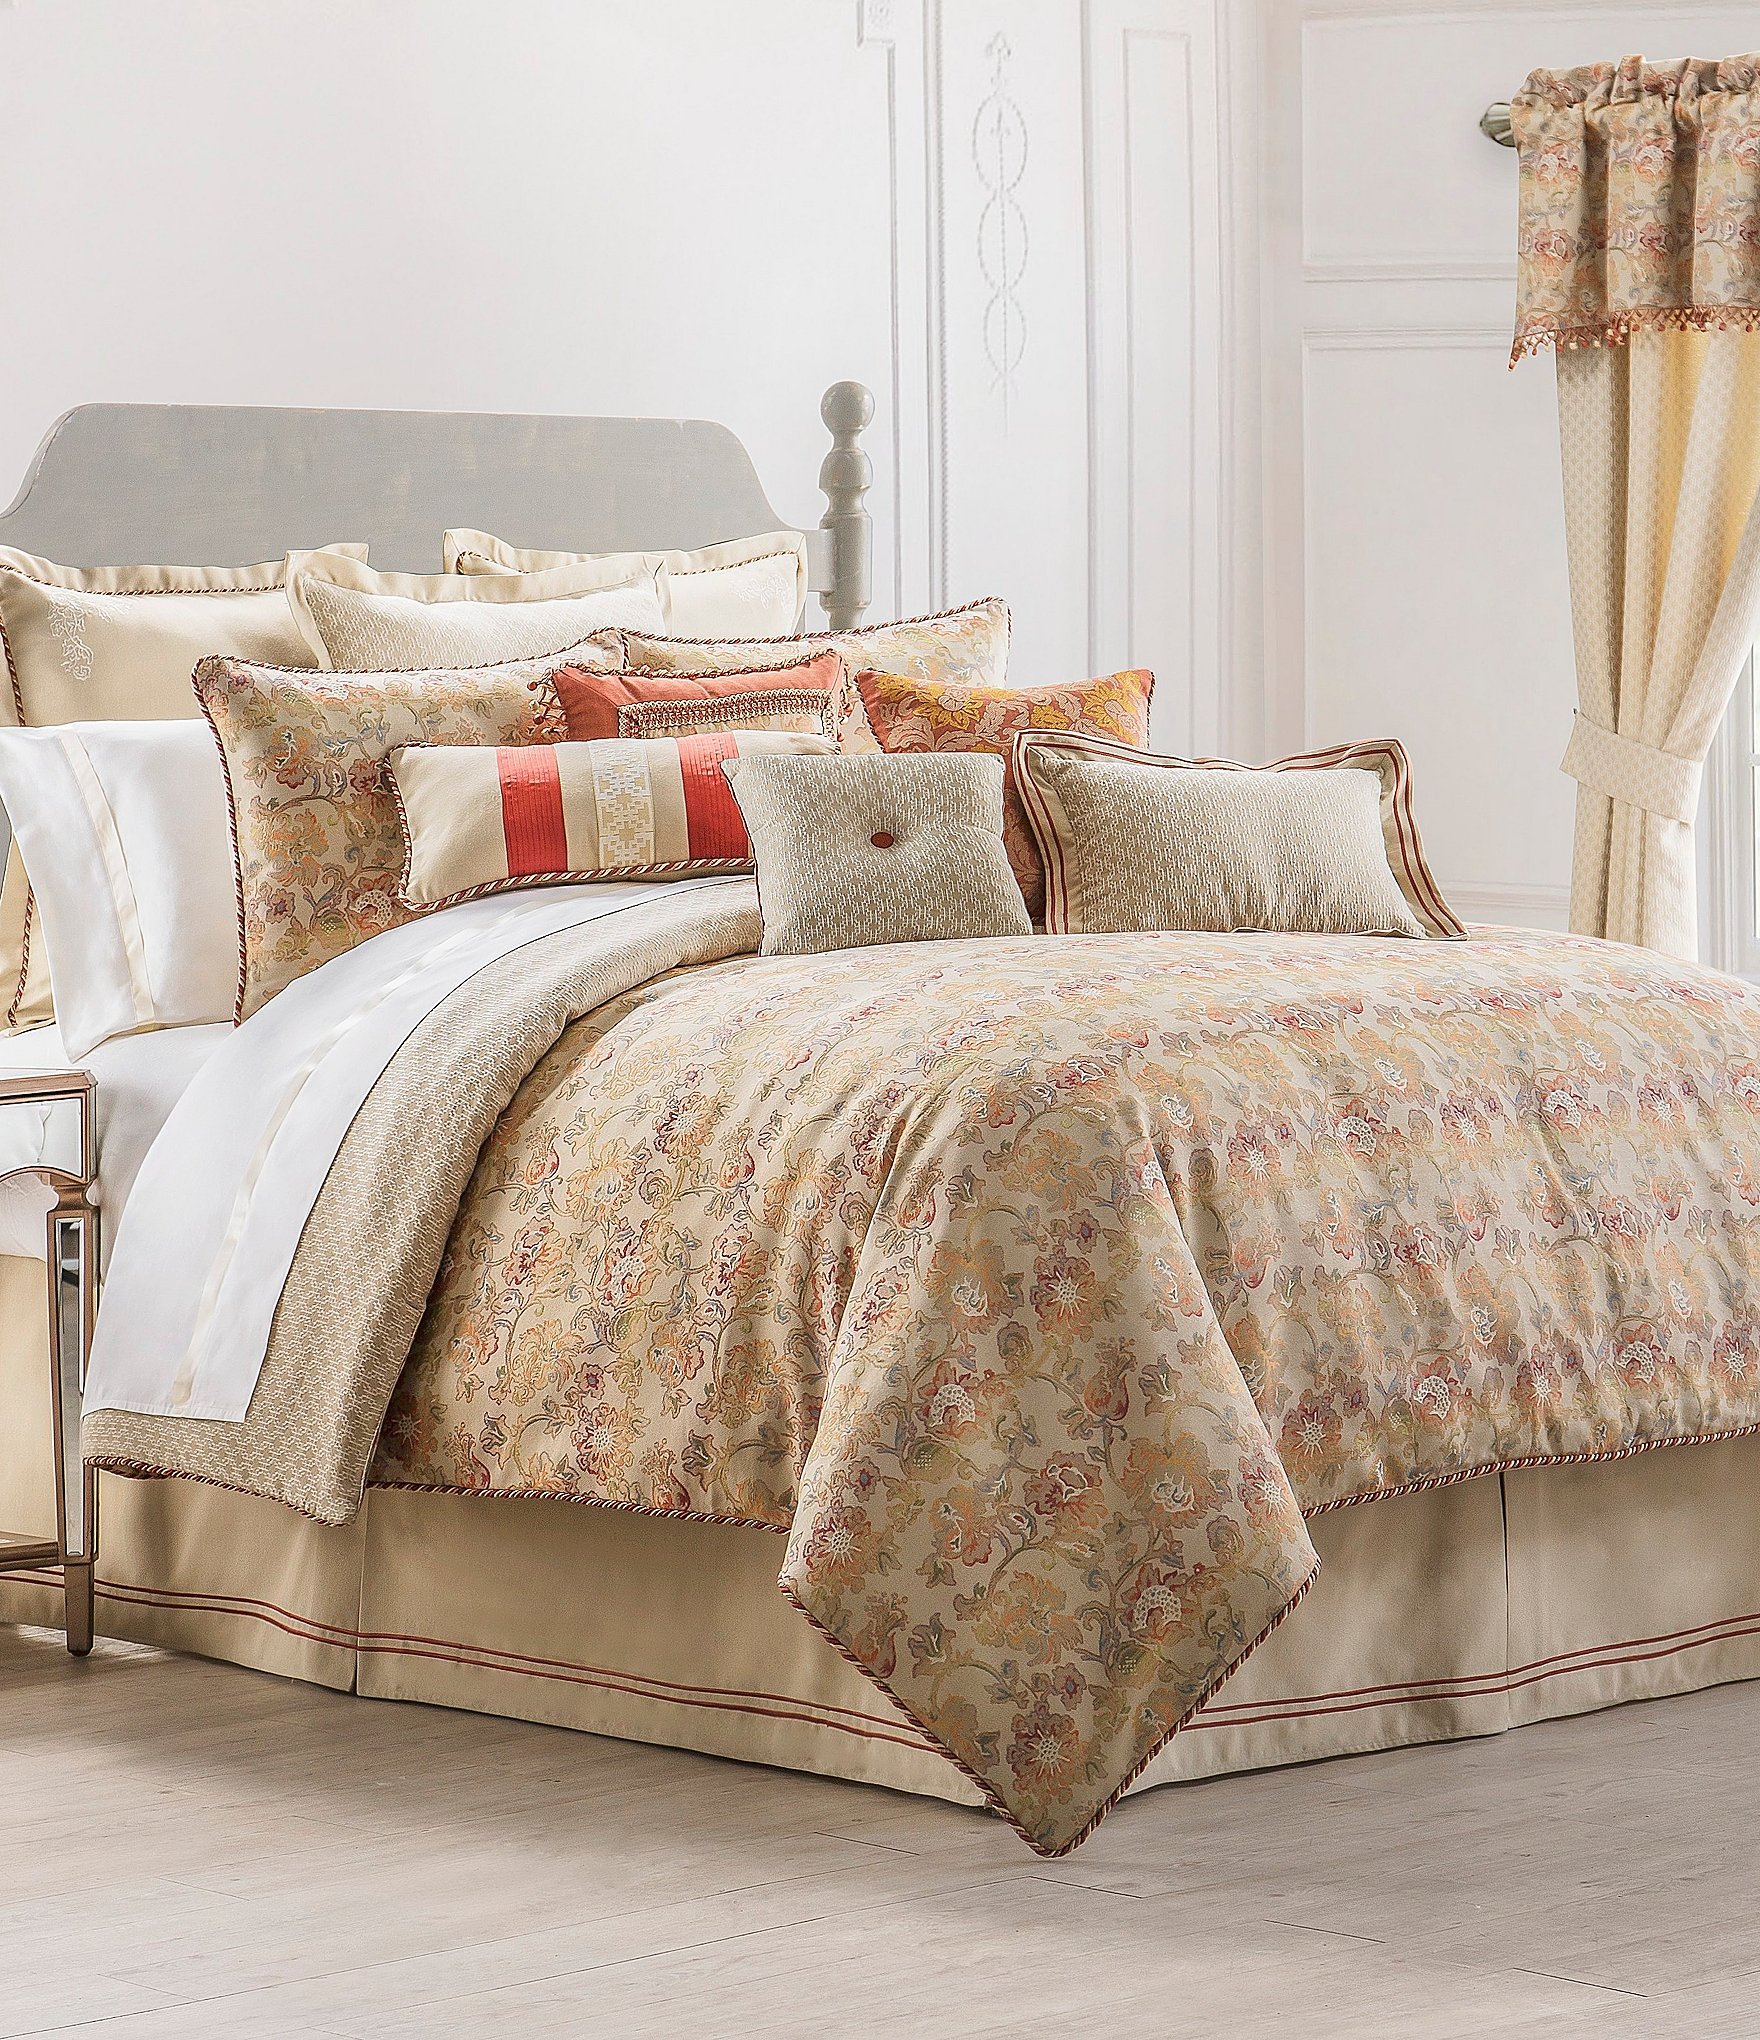 Whether you're looking for easy-care bedding or luxury bedding sets, we're here to answer your questions about bedspreads (the general name for all top-layer bedding), whether it's comforters, duvets, coverlets, or quilts.